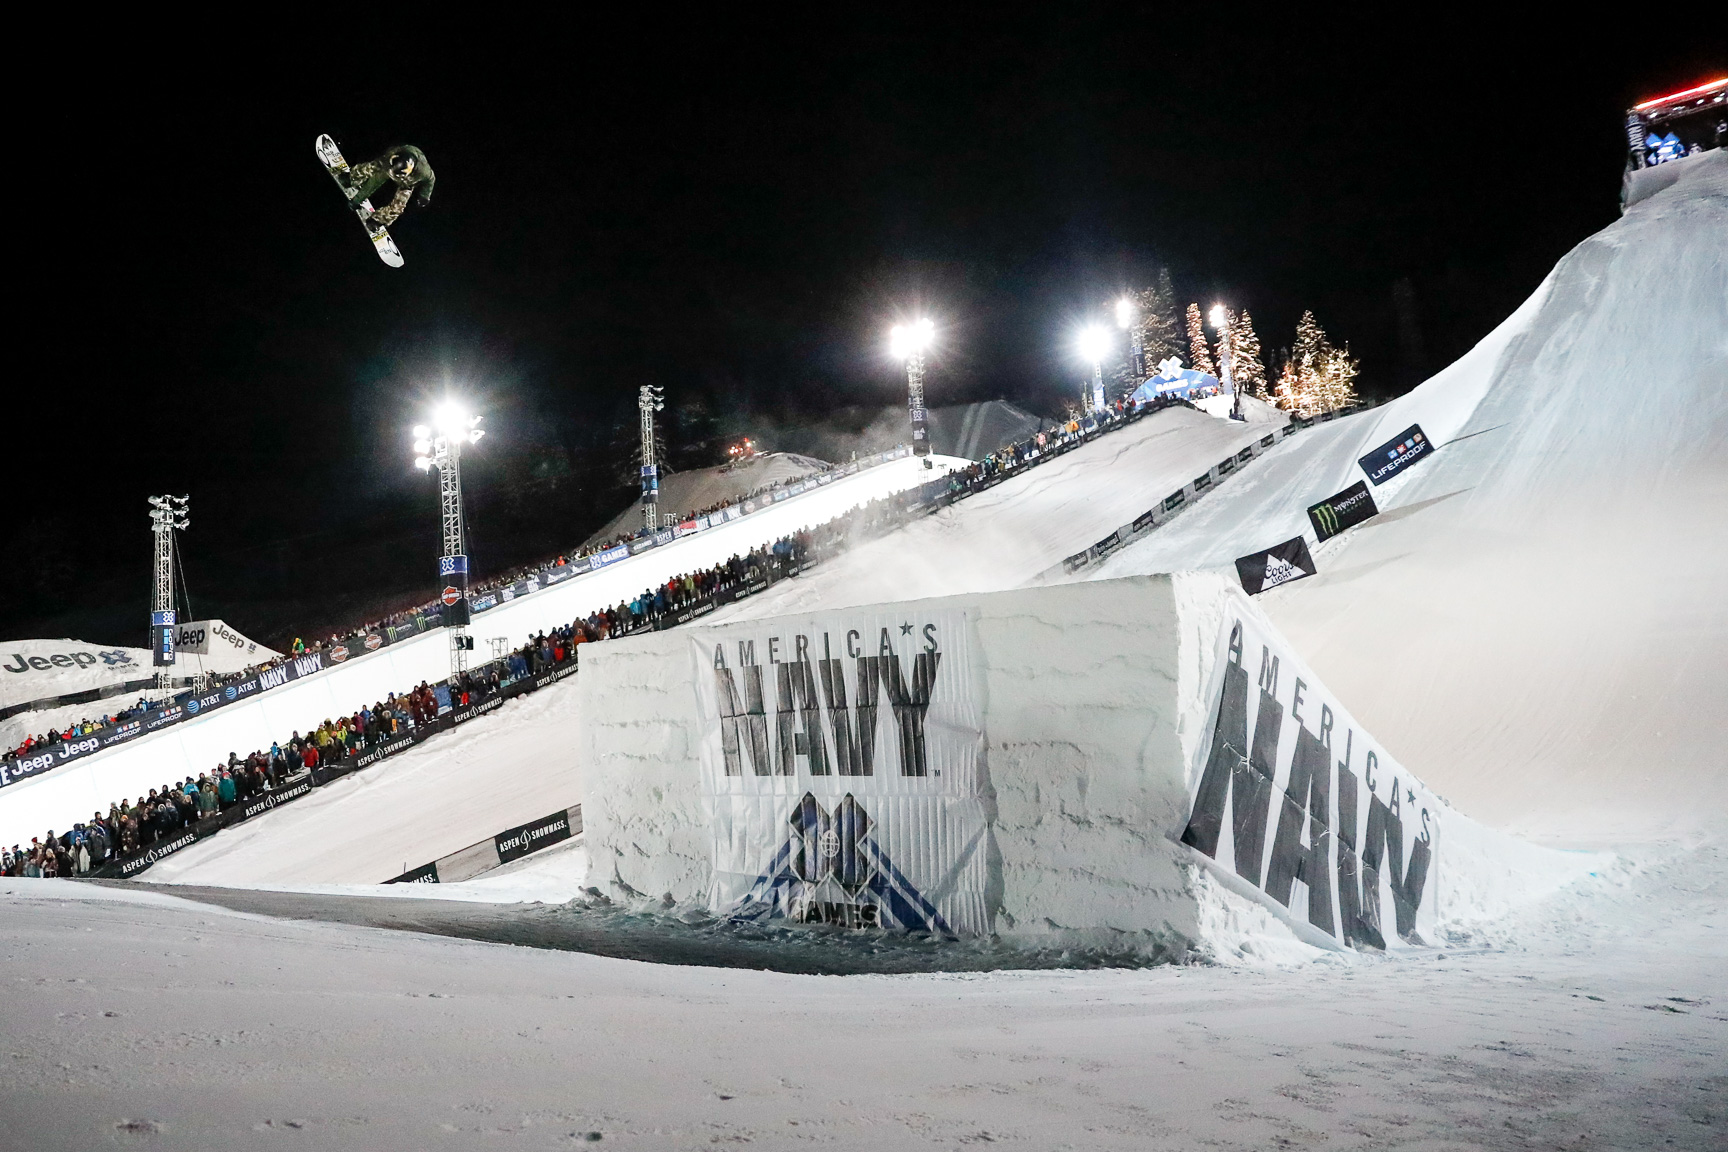 Women hit the Big Air stage for the first time at an X Games in Aspen on Thursday night. The firsts kept rolling when Hailey Langland stomped a Cab double cork 1080, the first double cork landed off a jump by a woman in competition at an X Games.